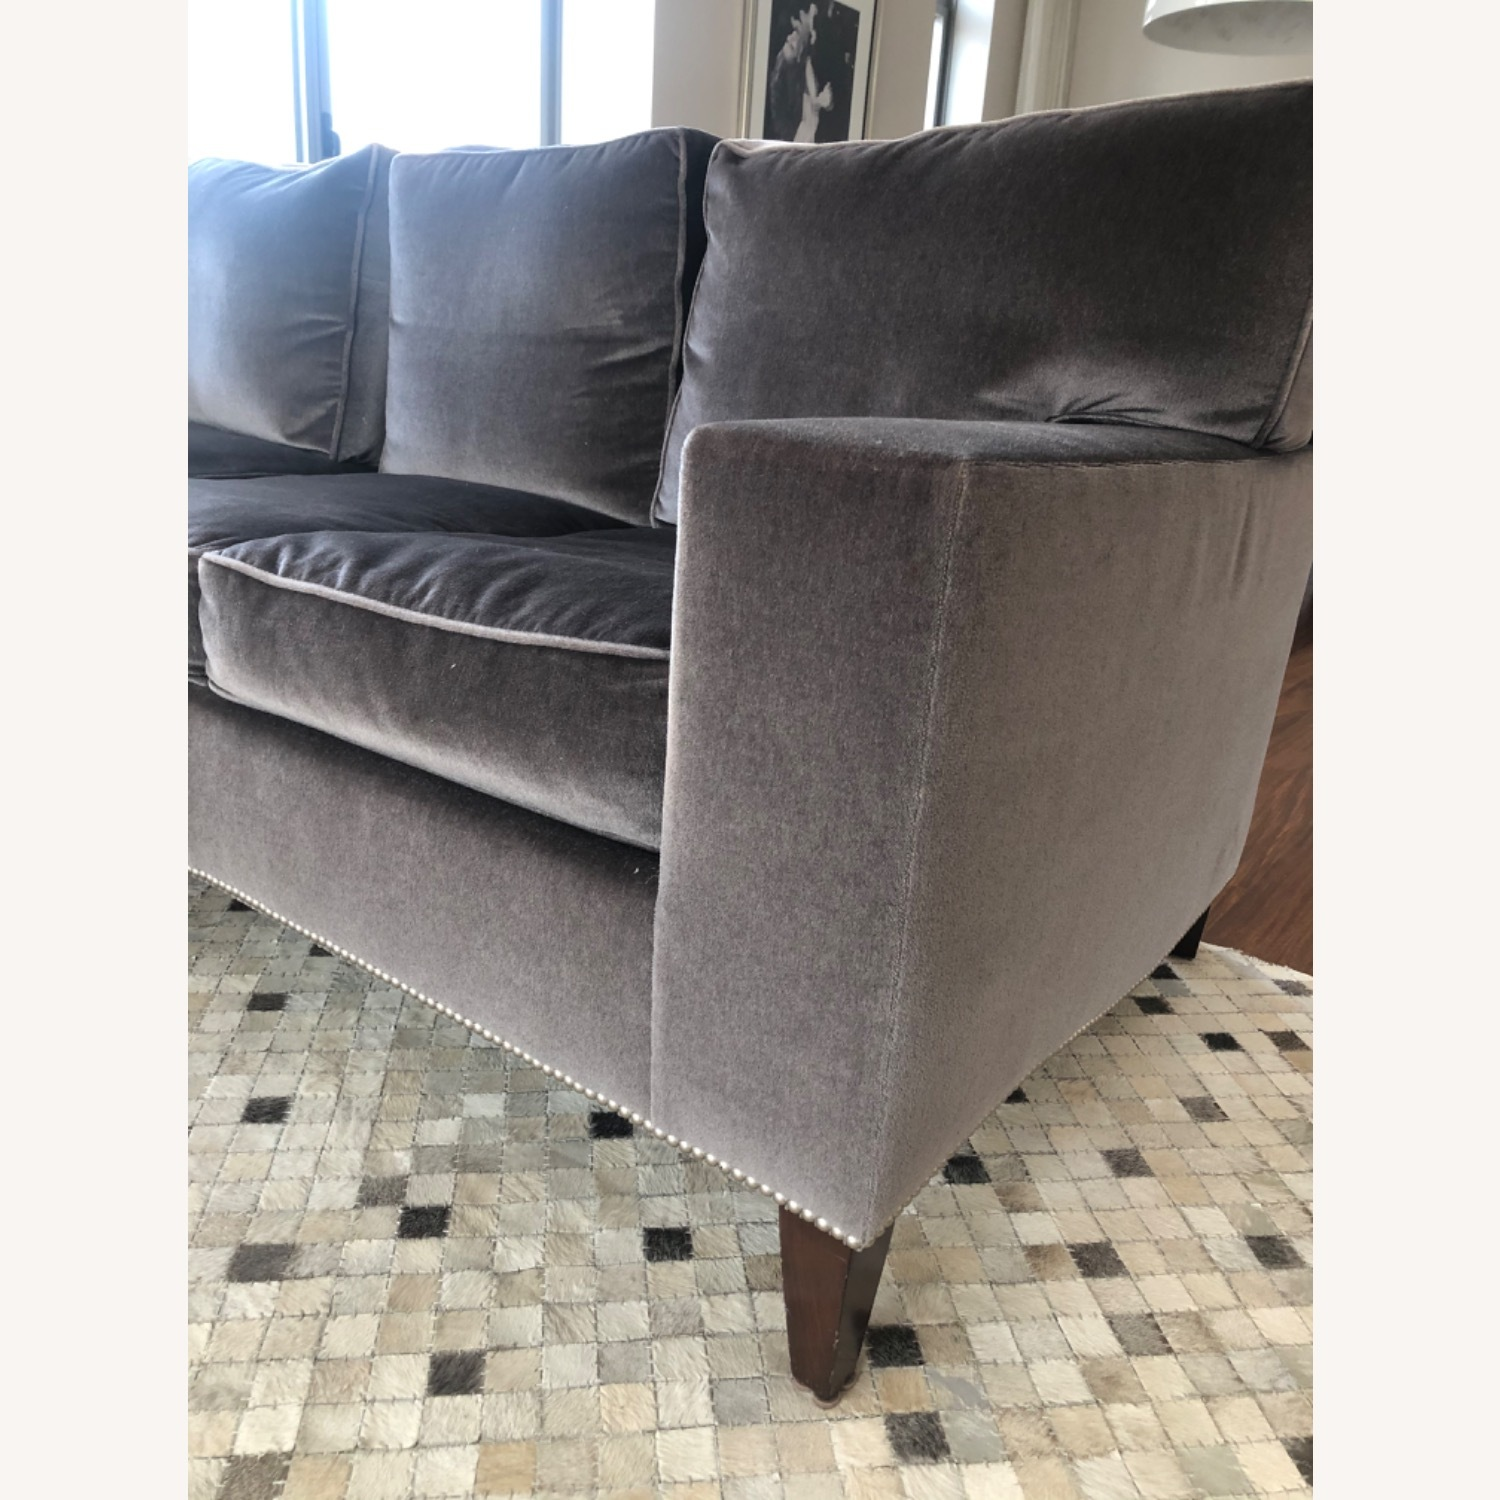 Chic Custom Couch creates by our Designer - image-7